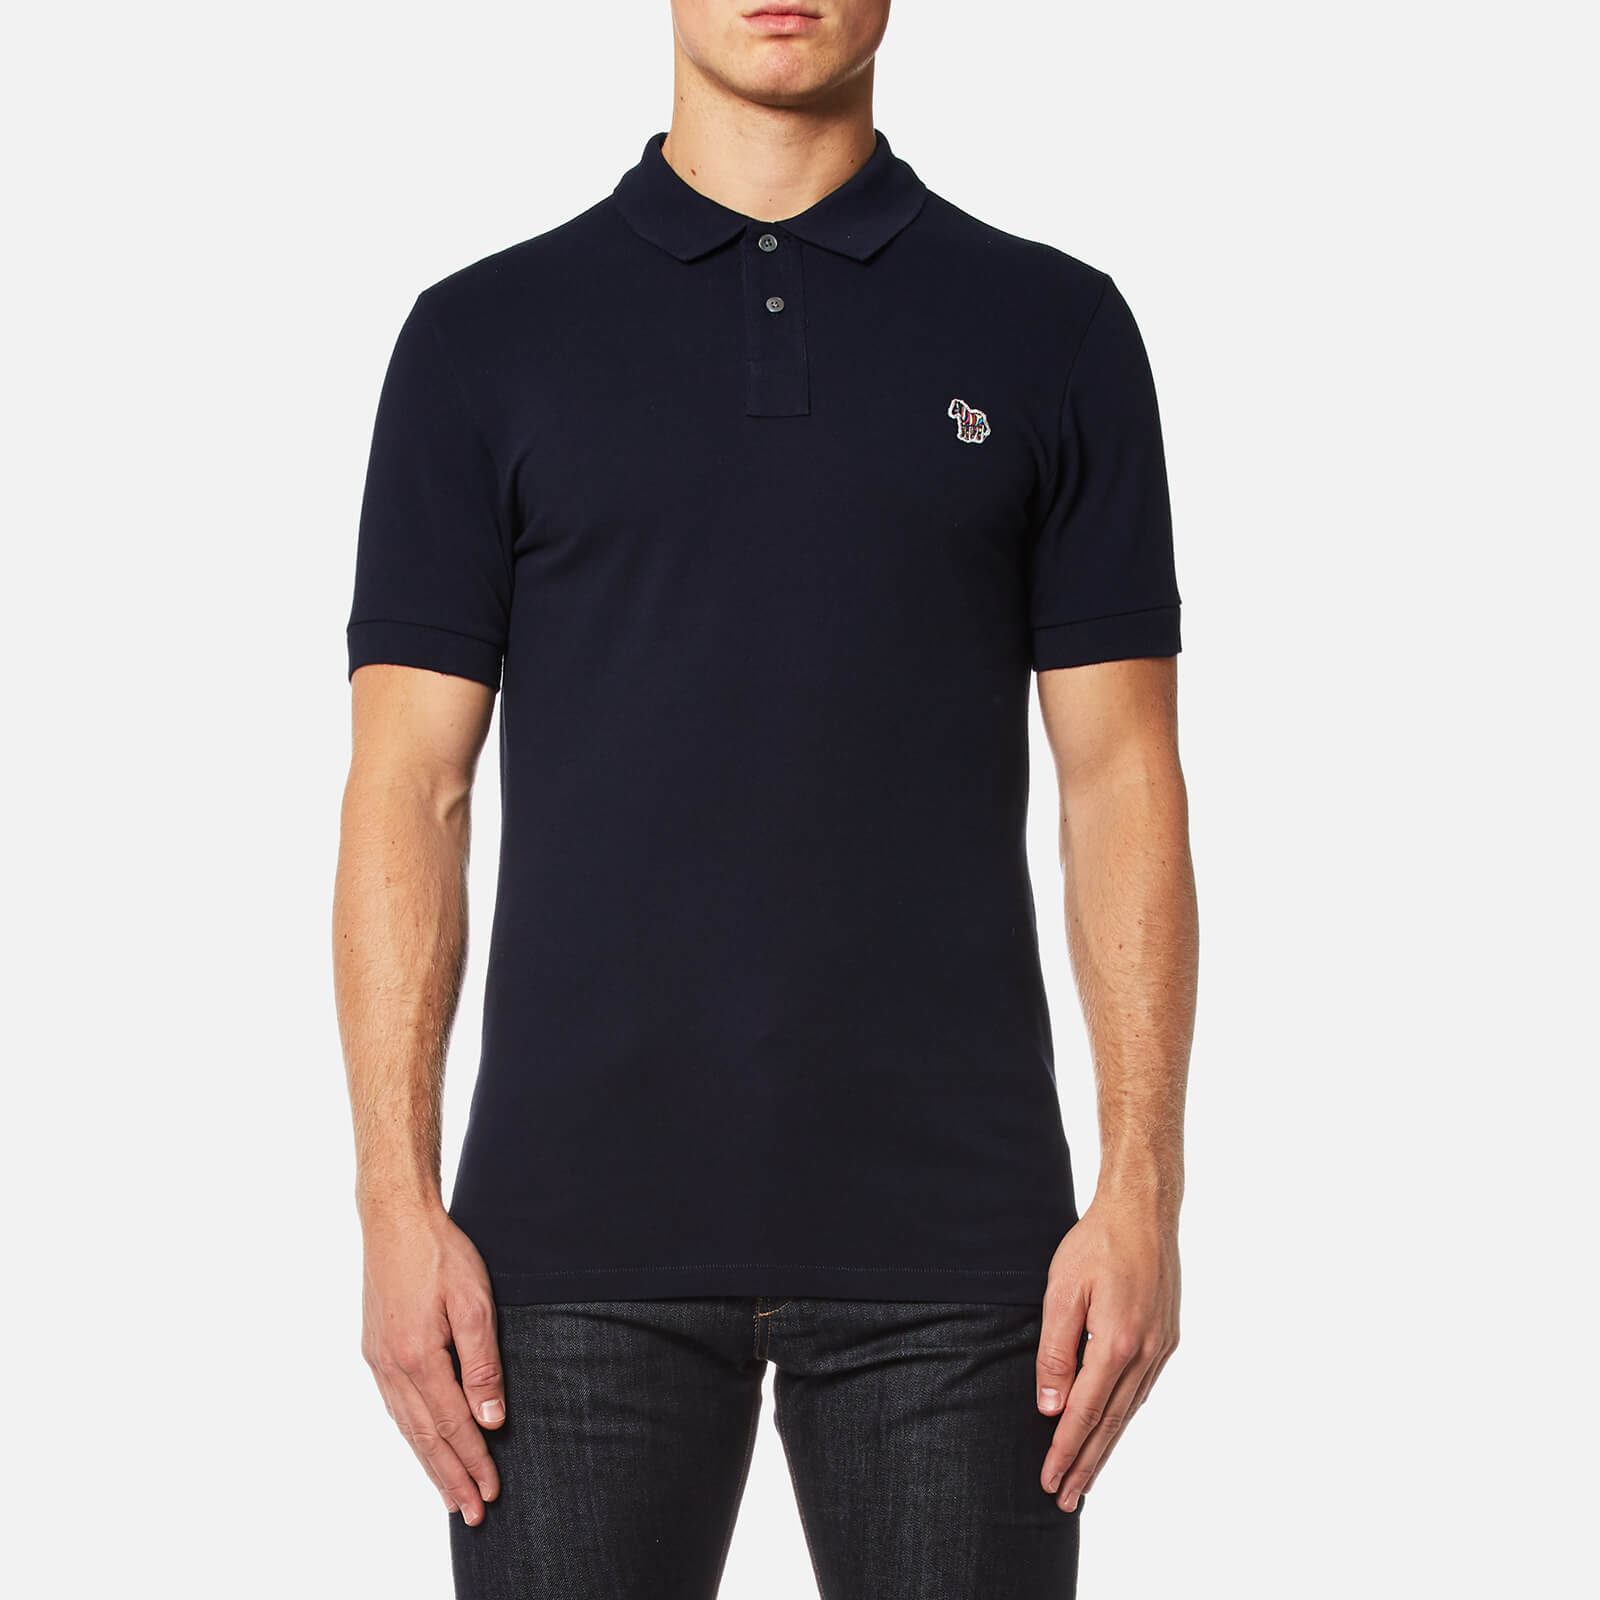 10058163ff2d8c PS Paul Smith Men's Zebra Logo Polo Shirt - Navy - Free UK Delivery over £50